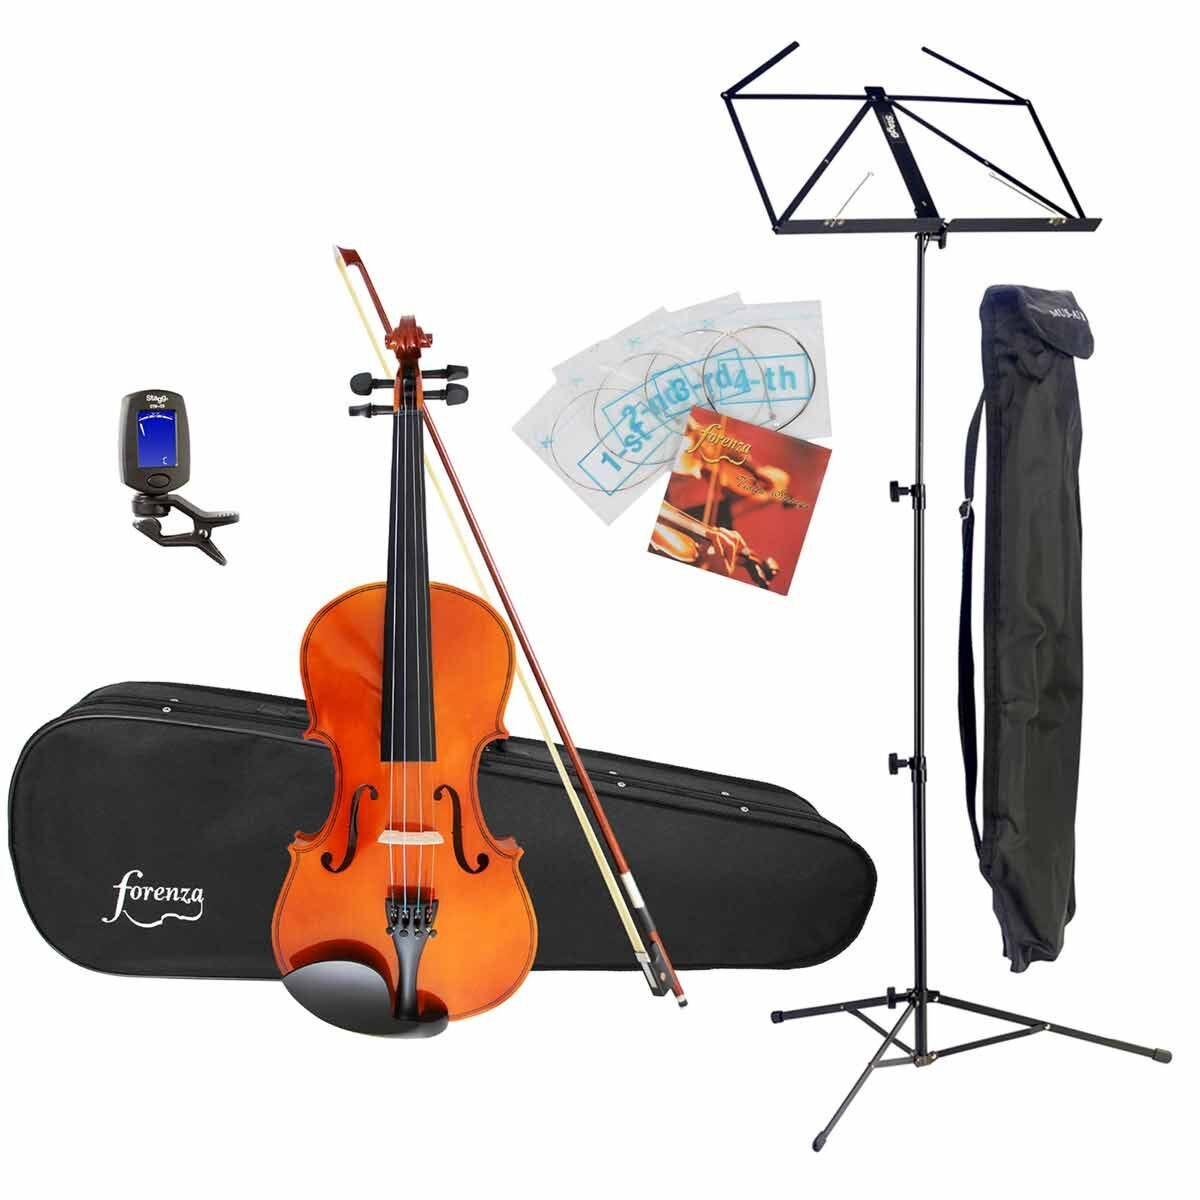 Forenza Uno 1/2 Size Violin Starter Pack